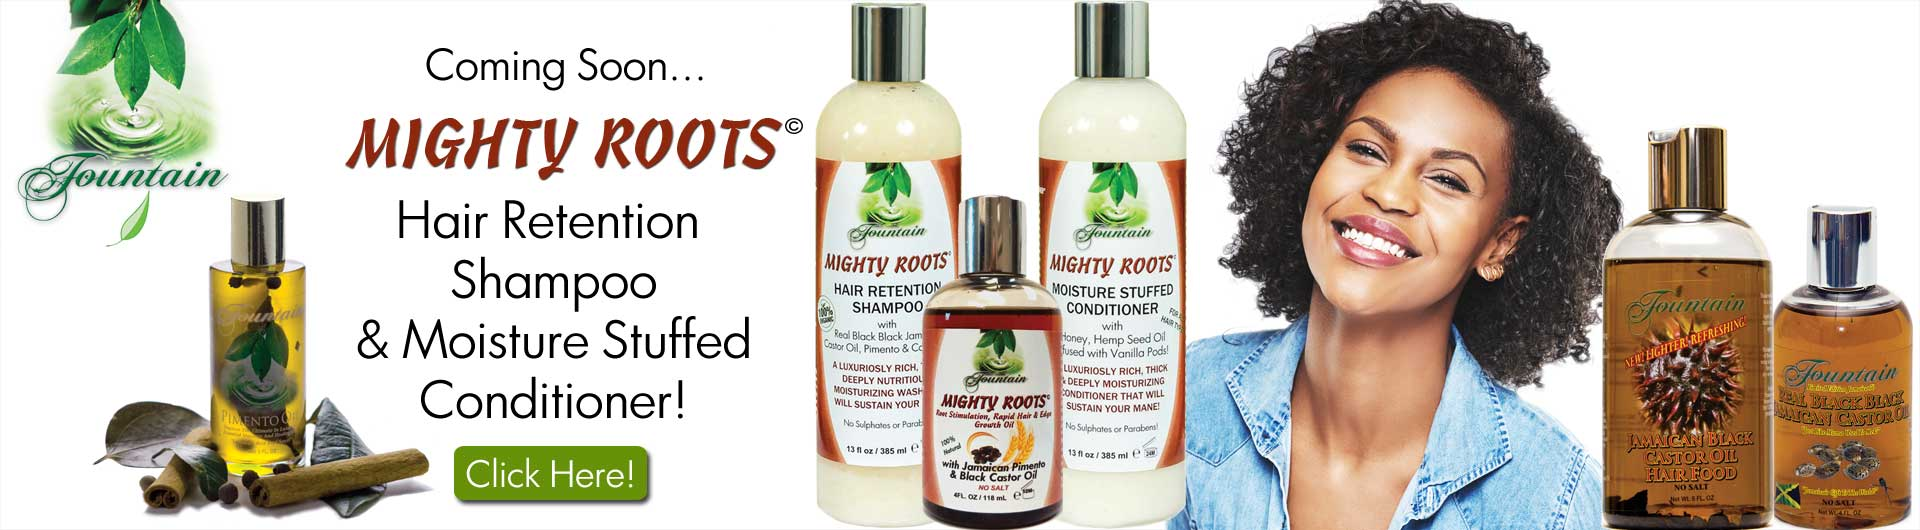 Fountain Oil products at JamaicanOIls